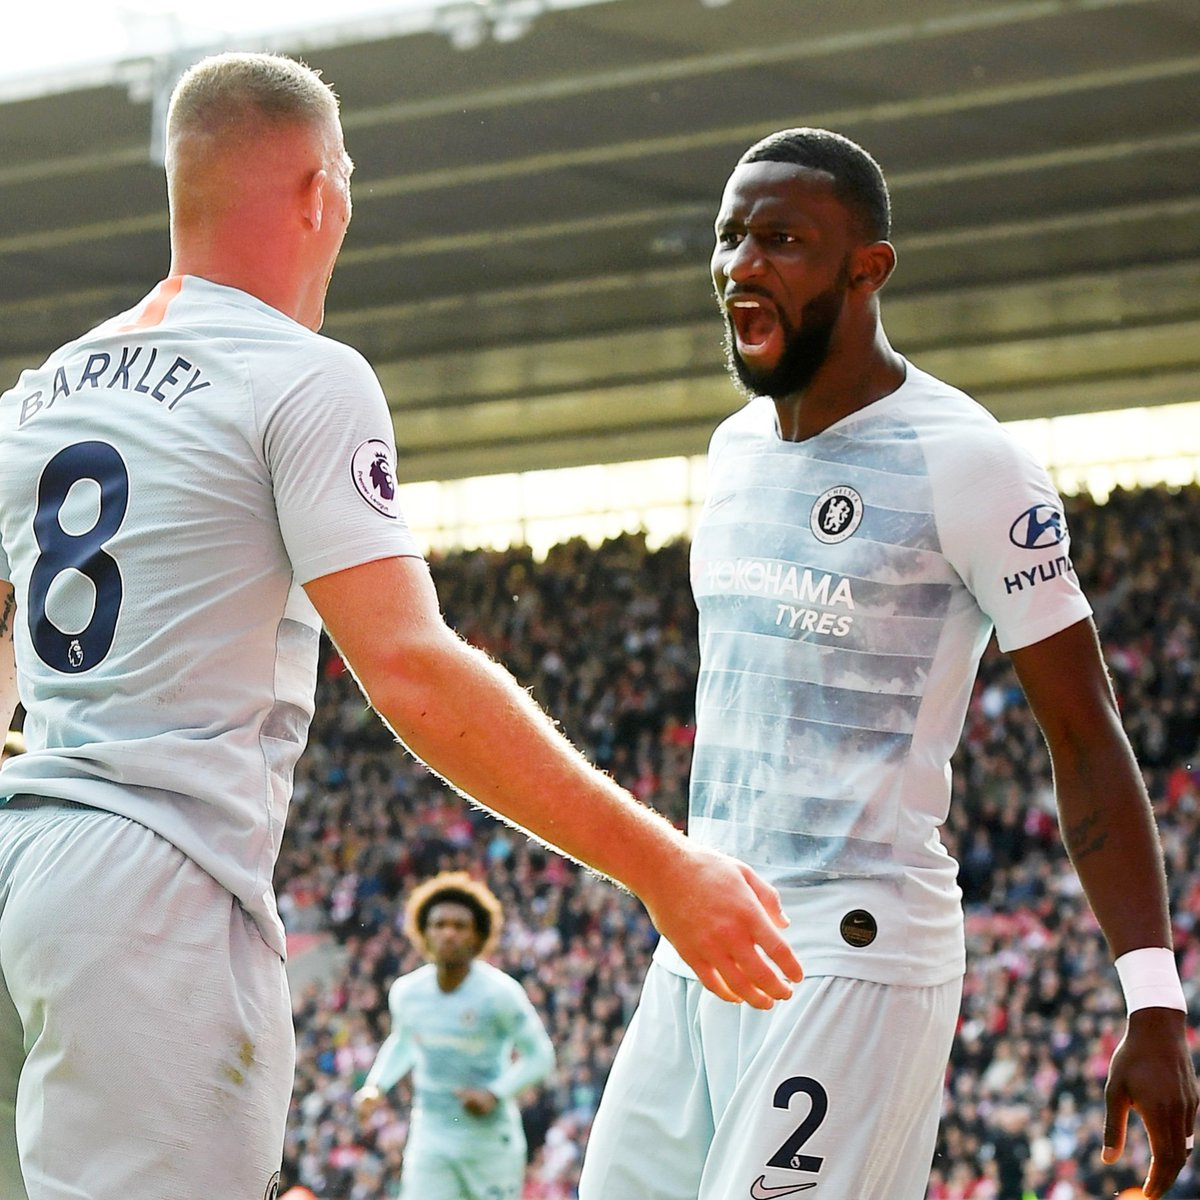 Come On You Blues!!! 💙💯 A clinical performance, a clean sheet and three points 💪🏾 Congrats @RBarkley8 on your 1st @chelseafc goal! #Hustle #AlwaysBelieve #CFC